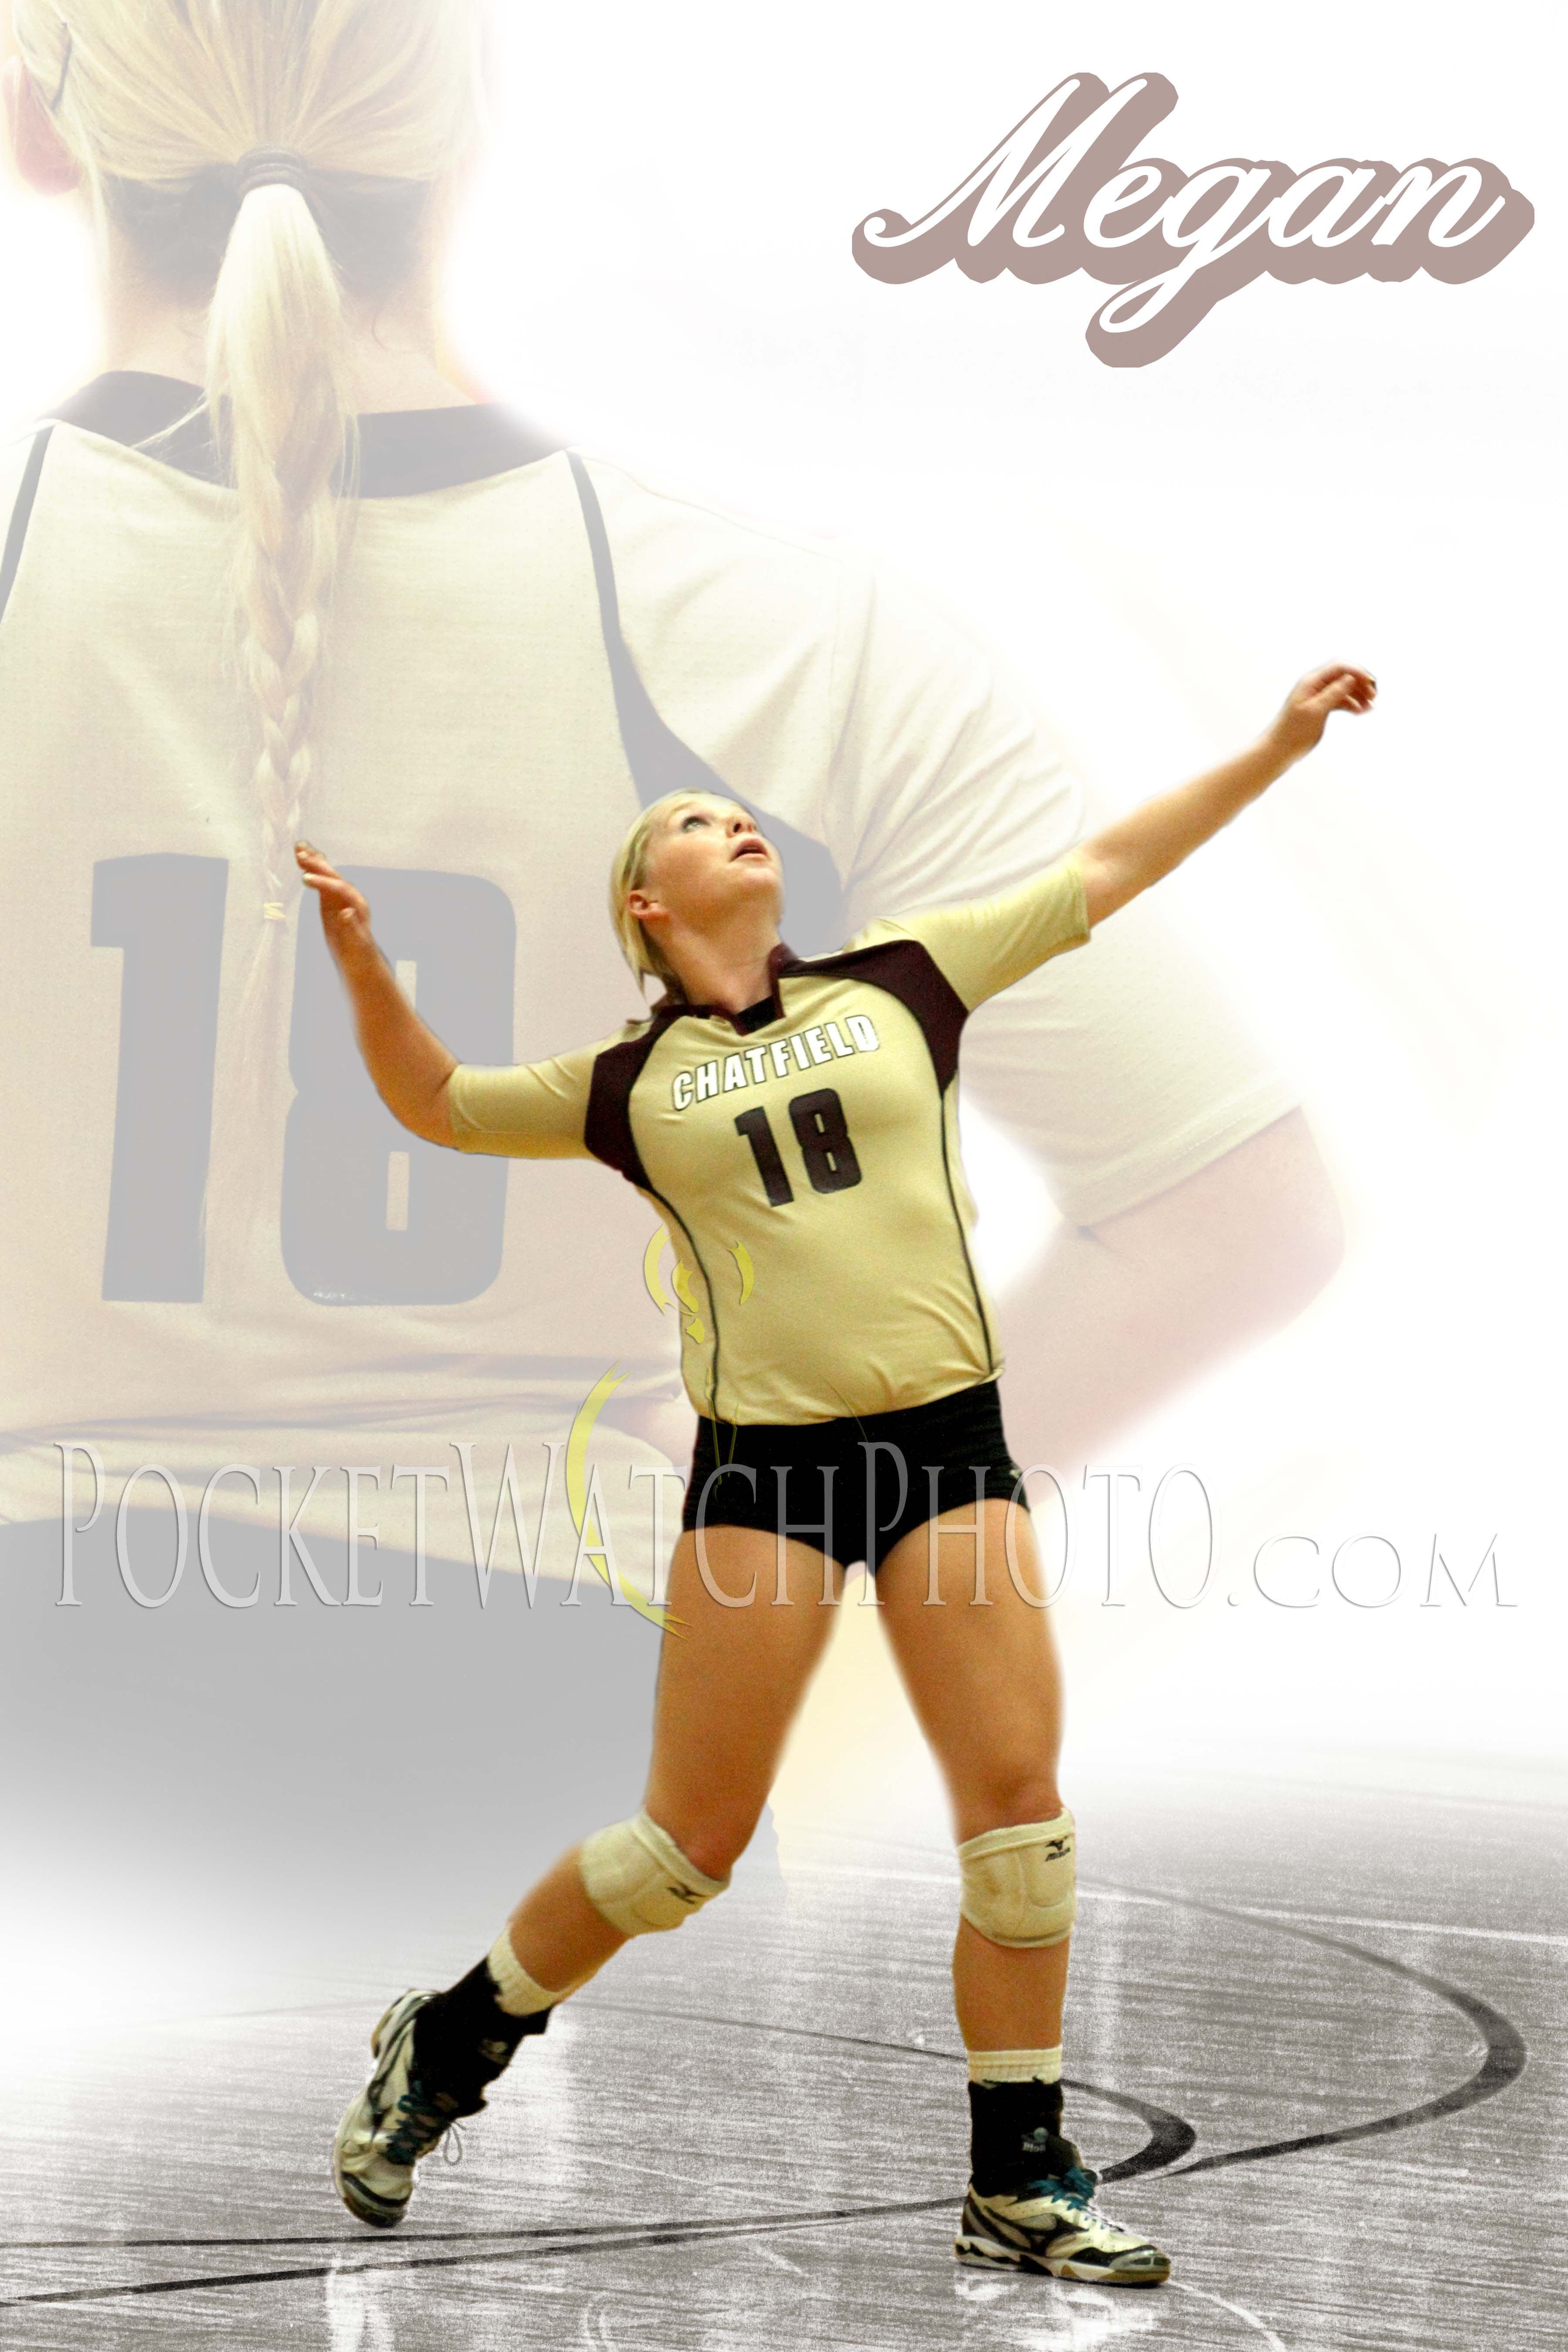 Pin On Volleyball Photography Pocketwatchphoto